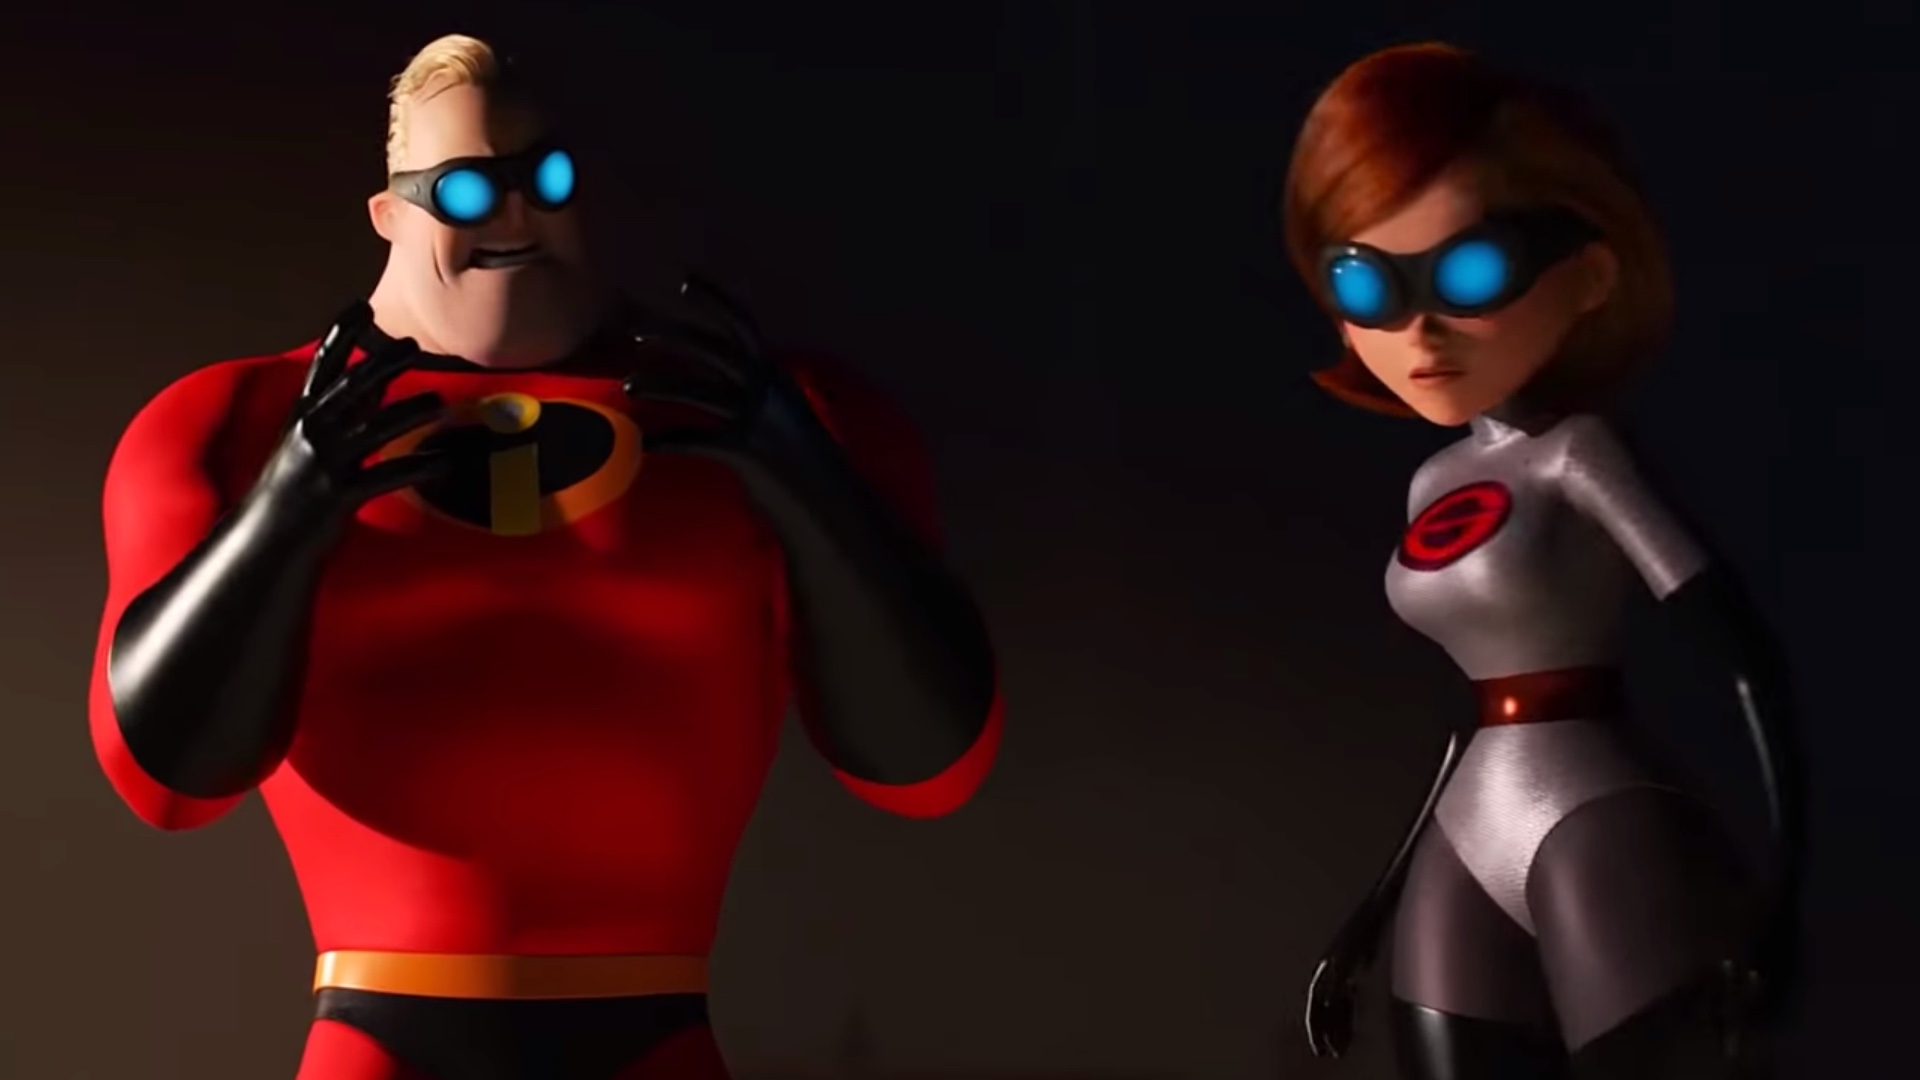 honest-trailer-for-the-incredibles-2-a-film-that-has-the-exact-same-dynamic-as-the-first-one-social.jpg